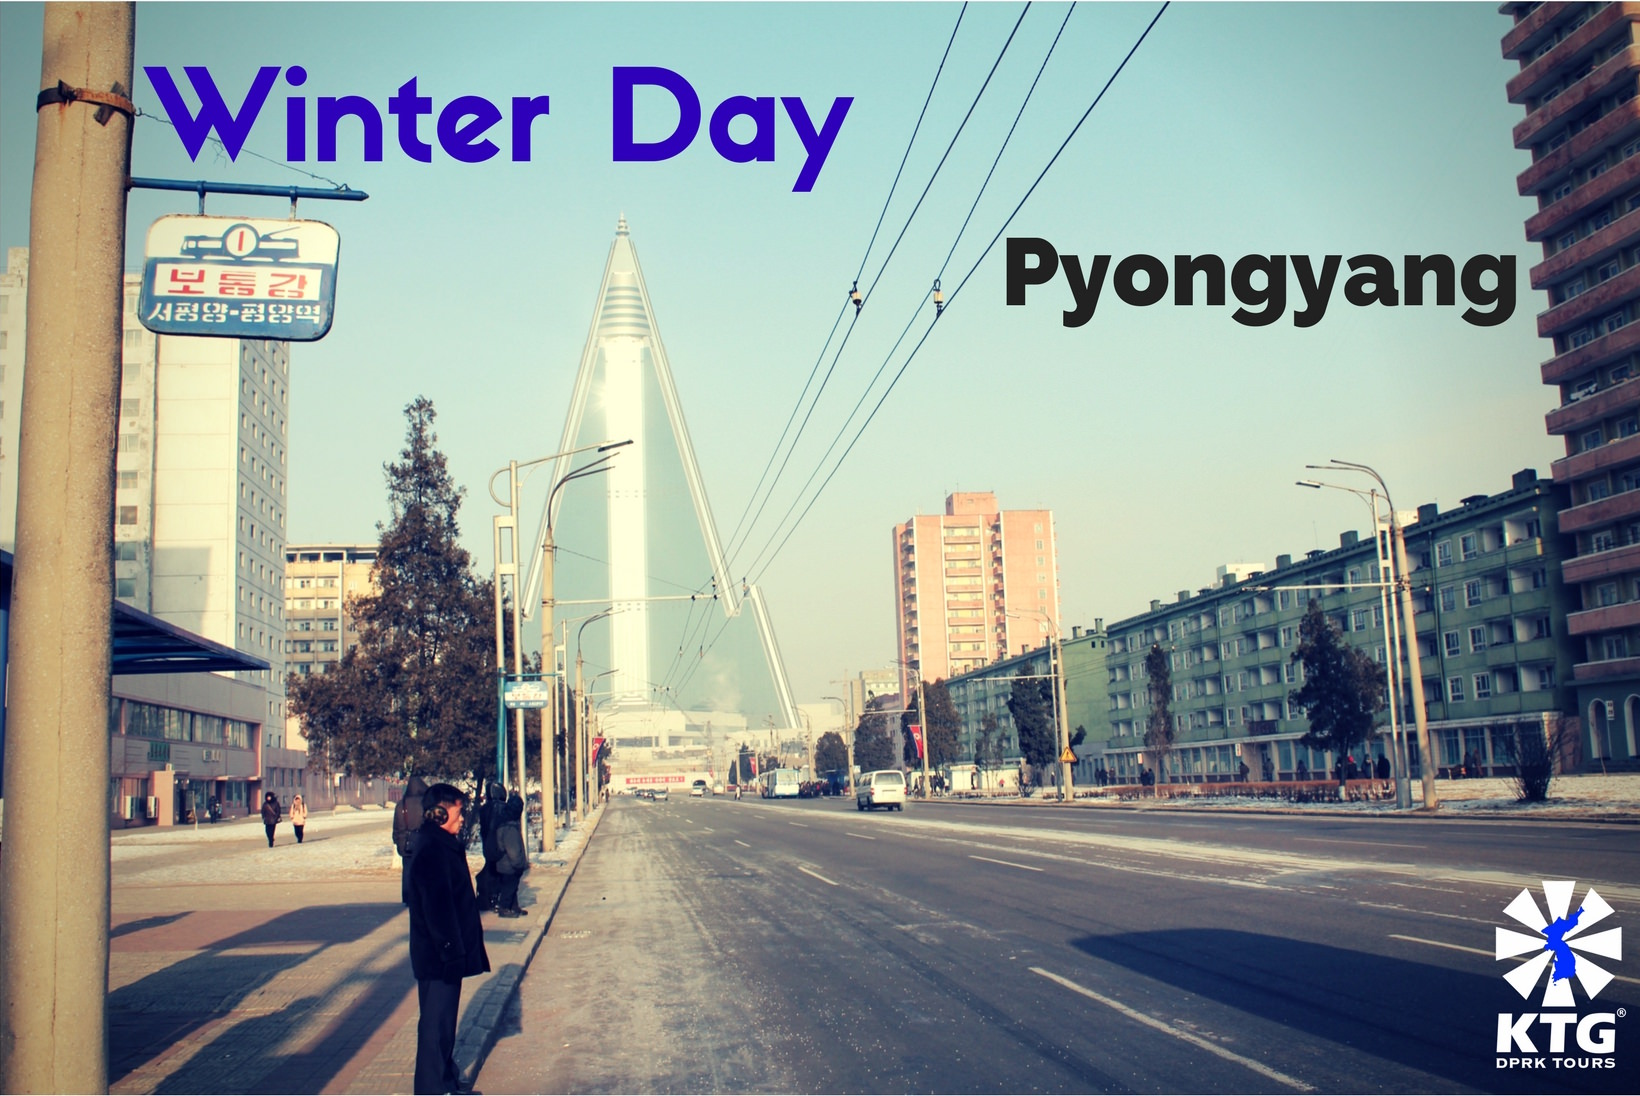 Winter in Pyongyang with KTG. Views of the Ryugyong Hotel